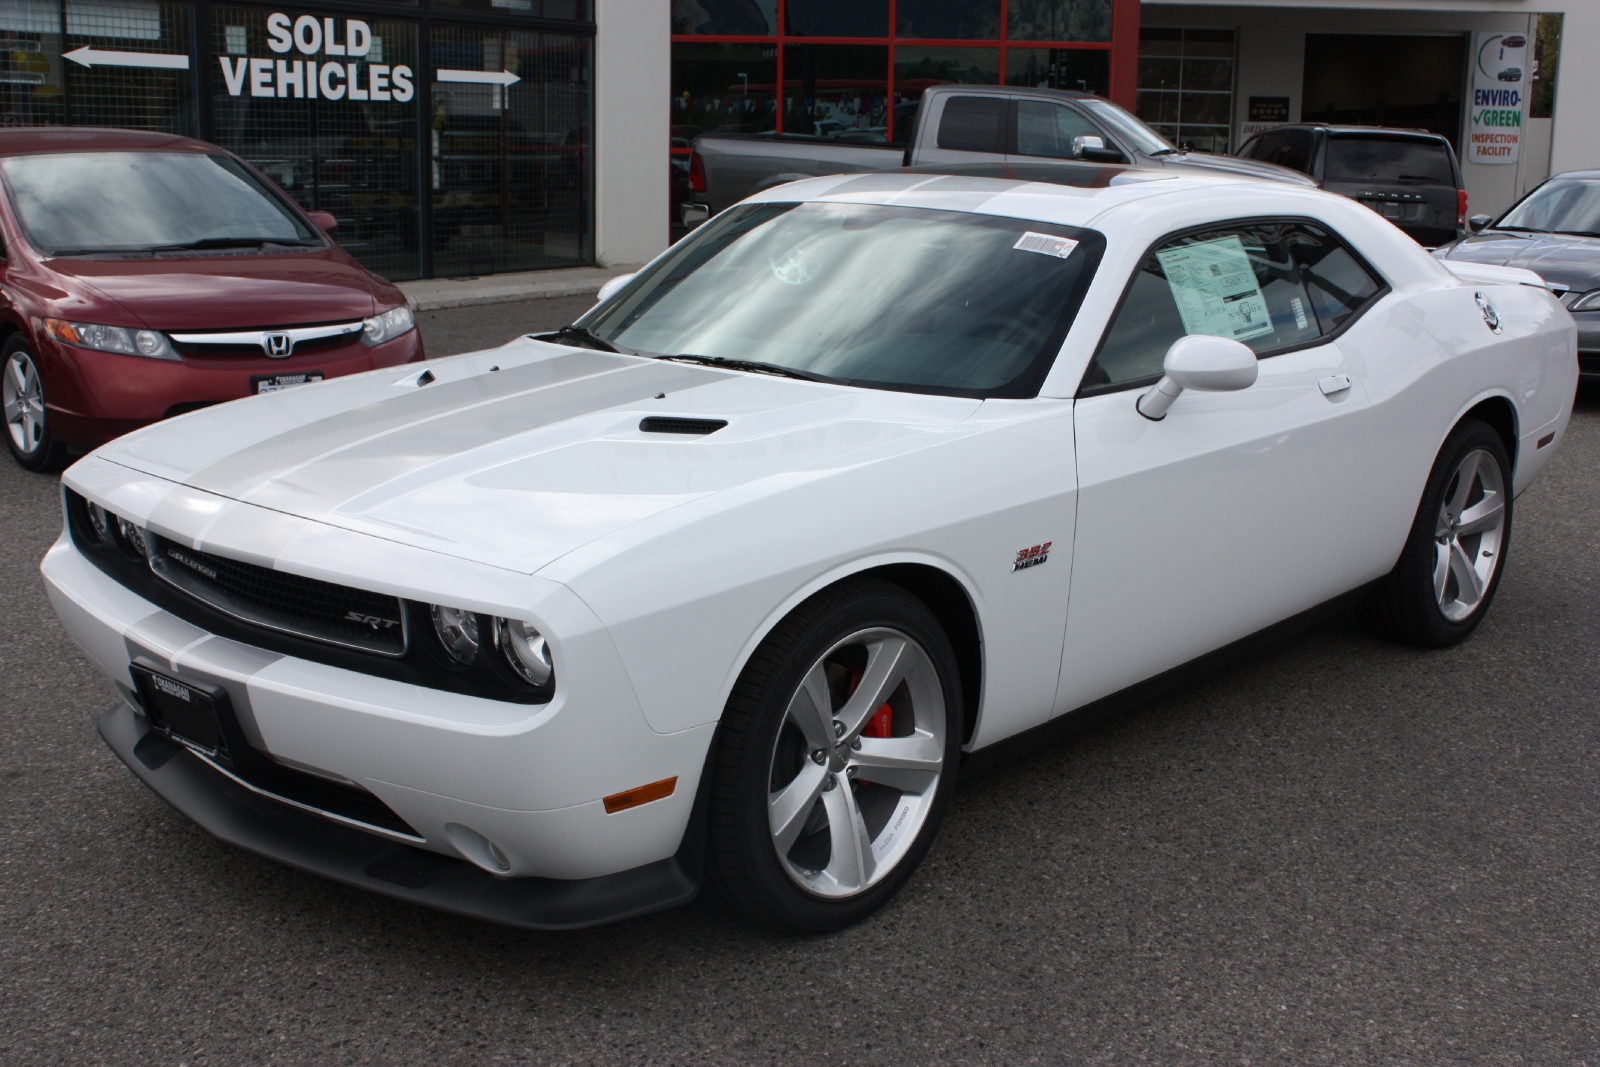 I want to see pics of white Challengers!-fa1d5b020a0d02b7009b774e6aace9f6.jpeg